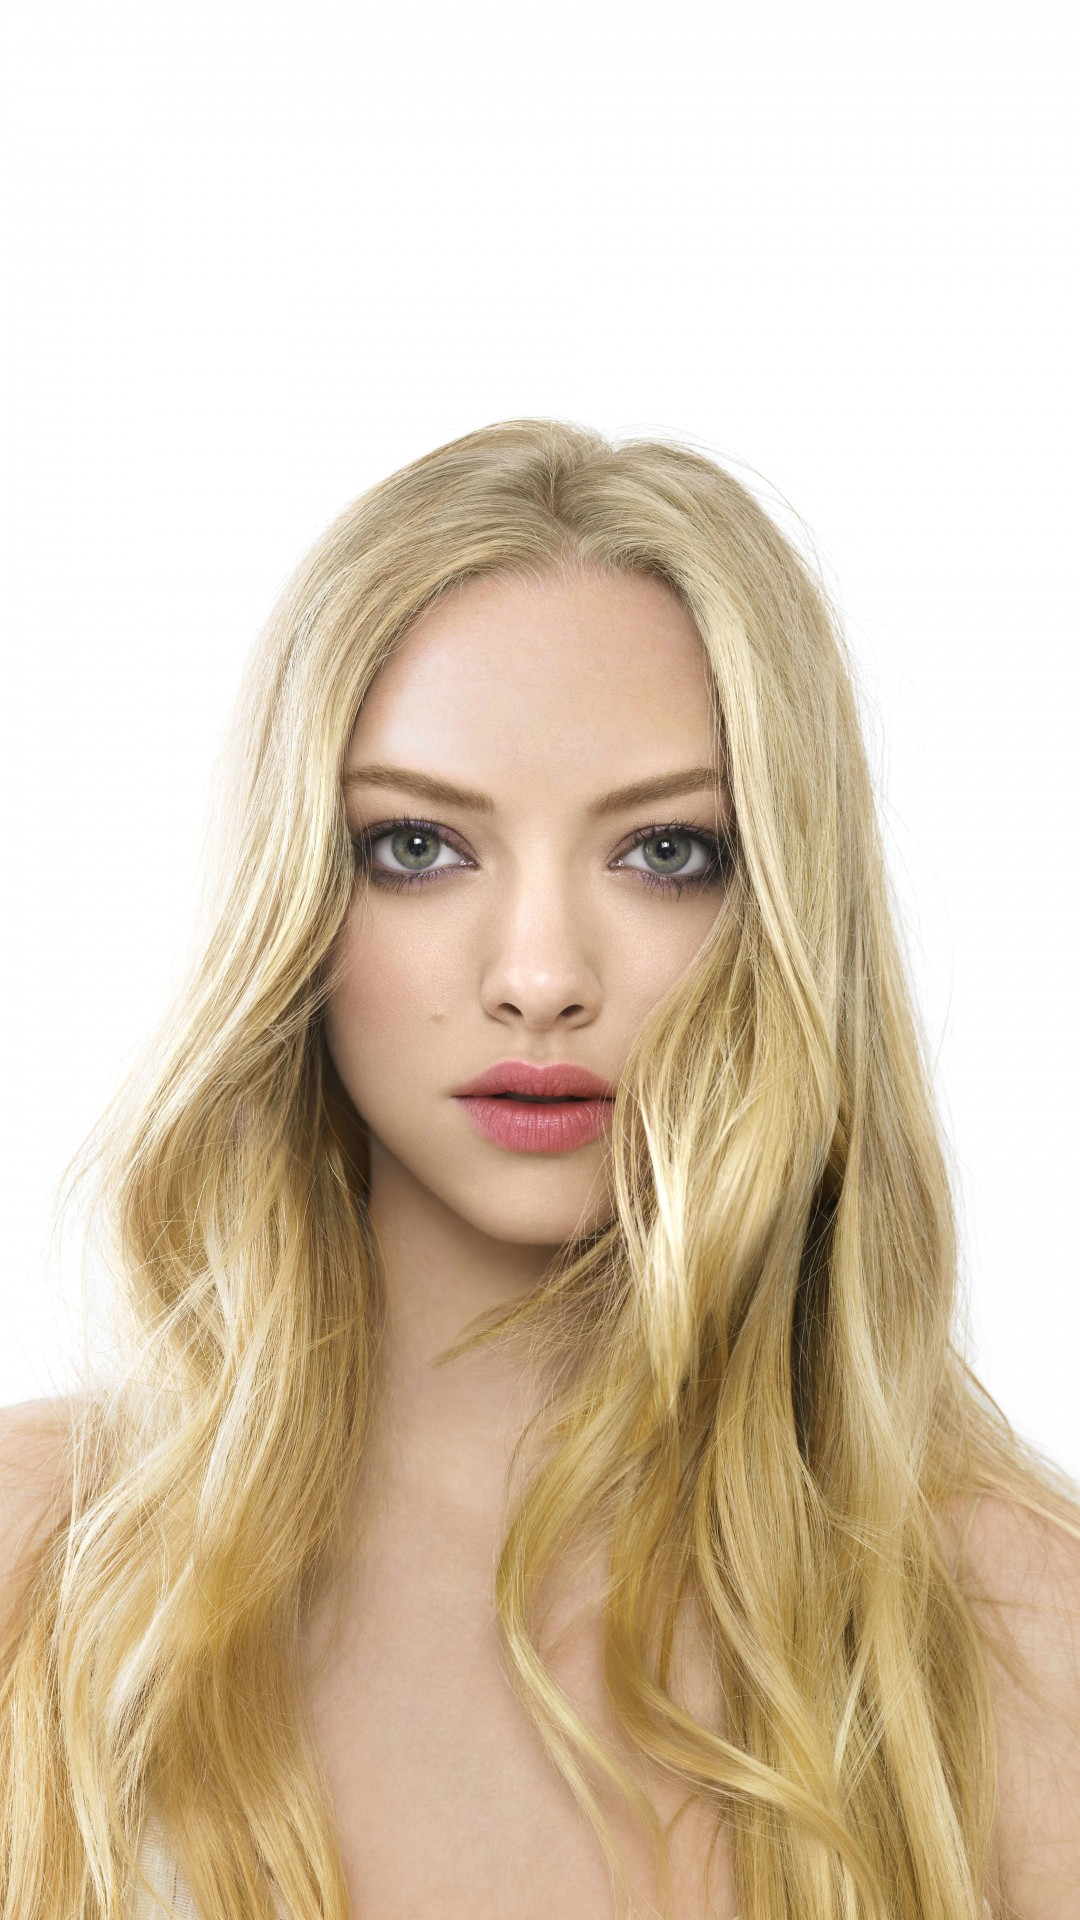 Amanda Seyfried Portrait Wallpaper for SAMSUNG Galaxy S4